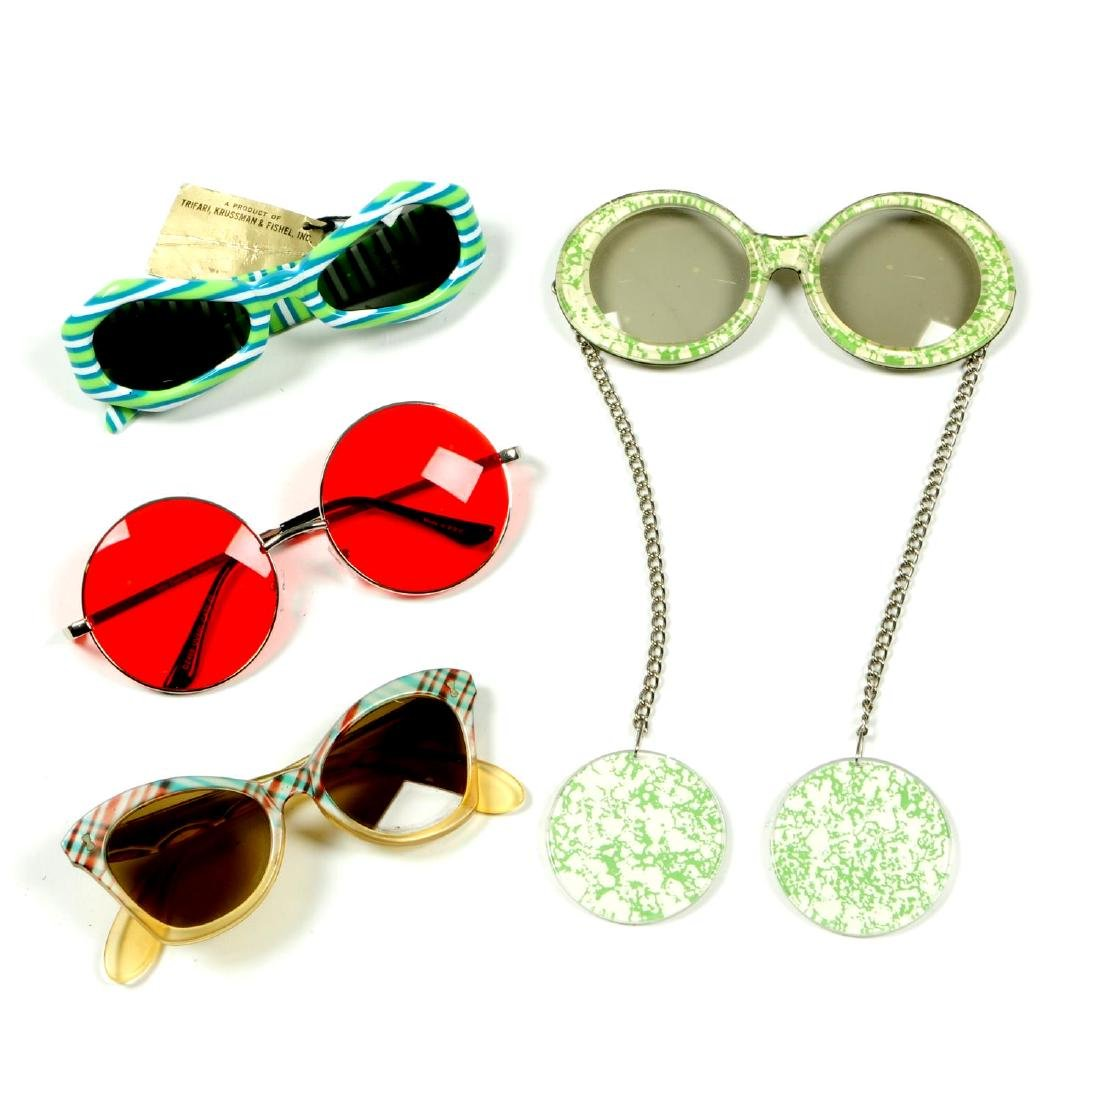 A selection of vintage sunglasses. To include a pair of